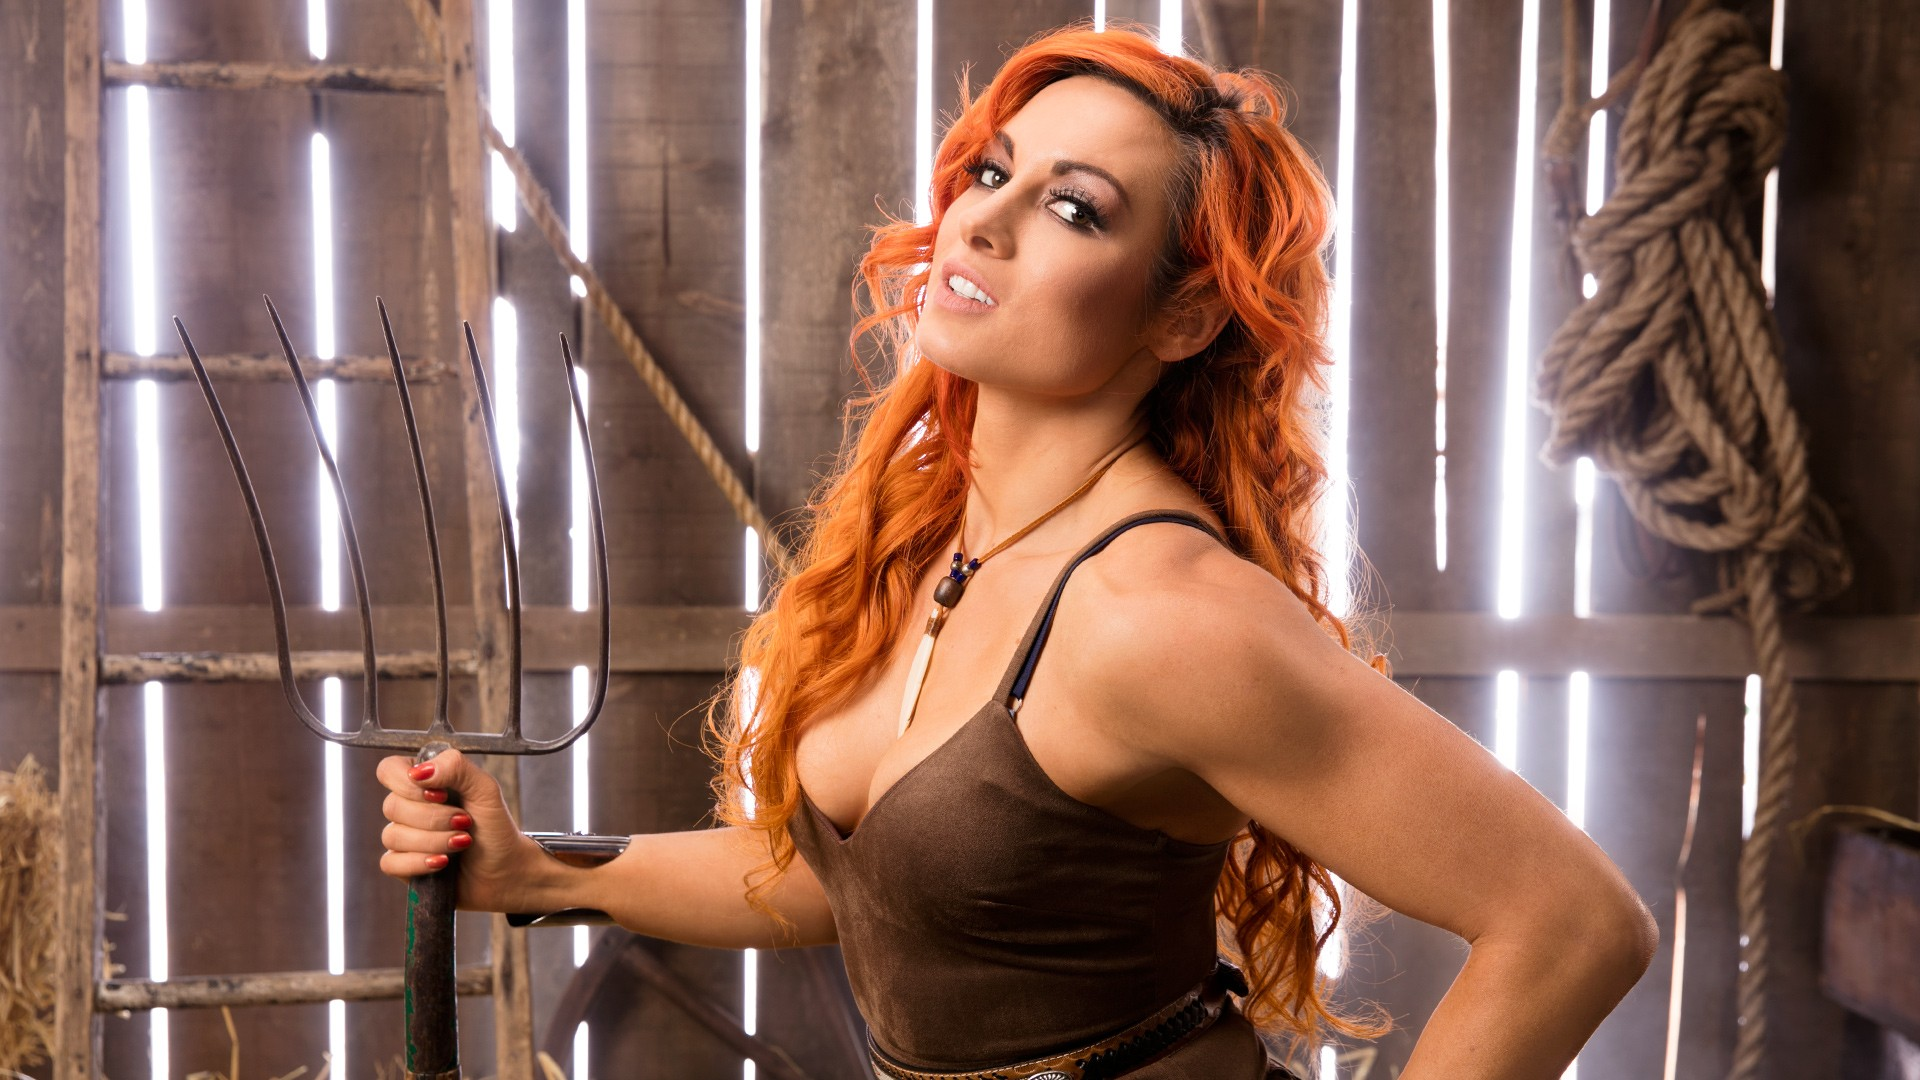 Pittsburgh Steelers Wallpaper Hd 2 Becky Lynch Hd Wallpapers Hintergr 252 Nde Wallpaper Abyss